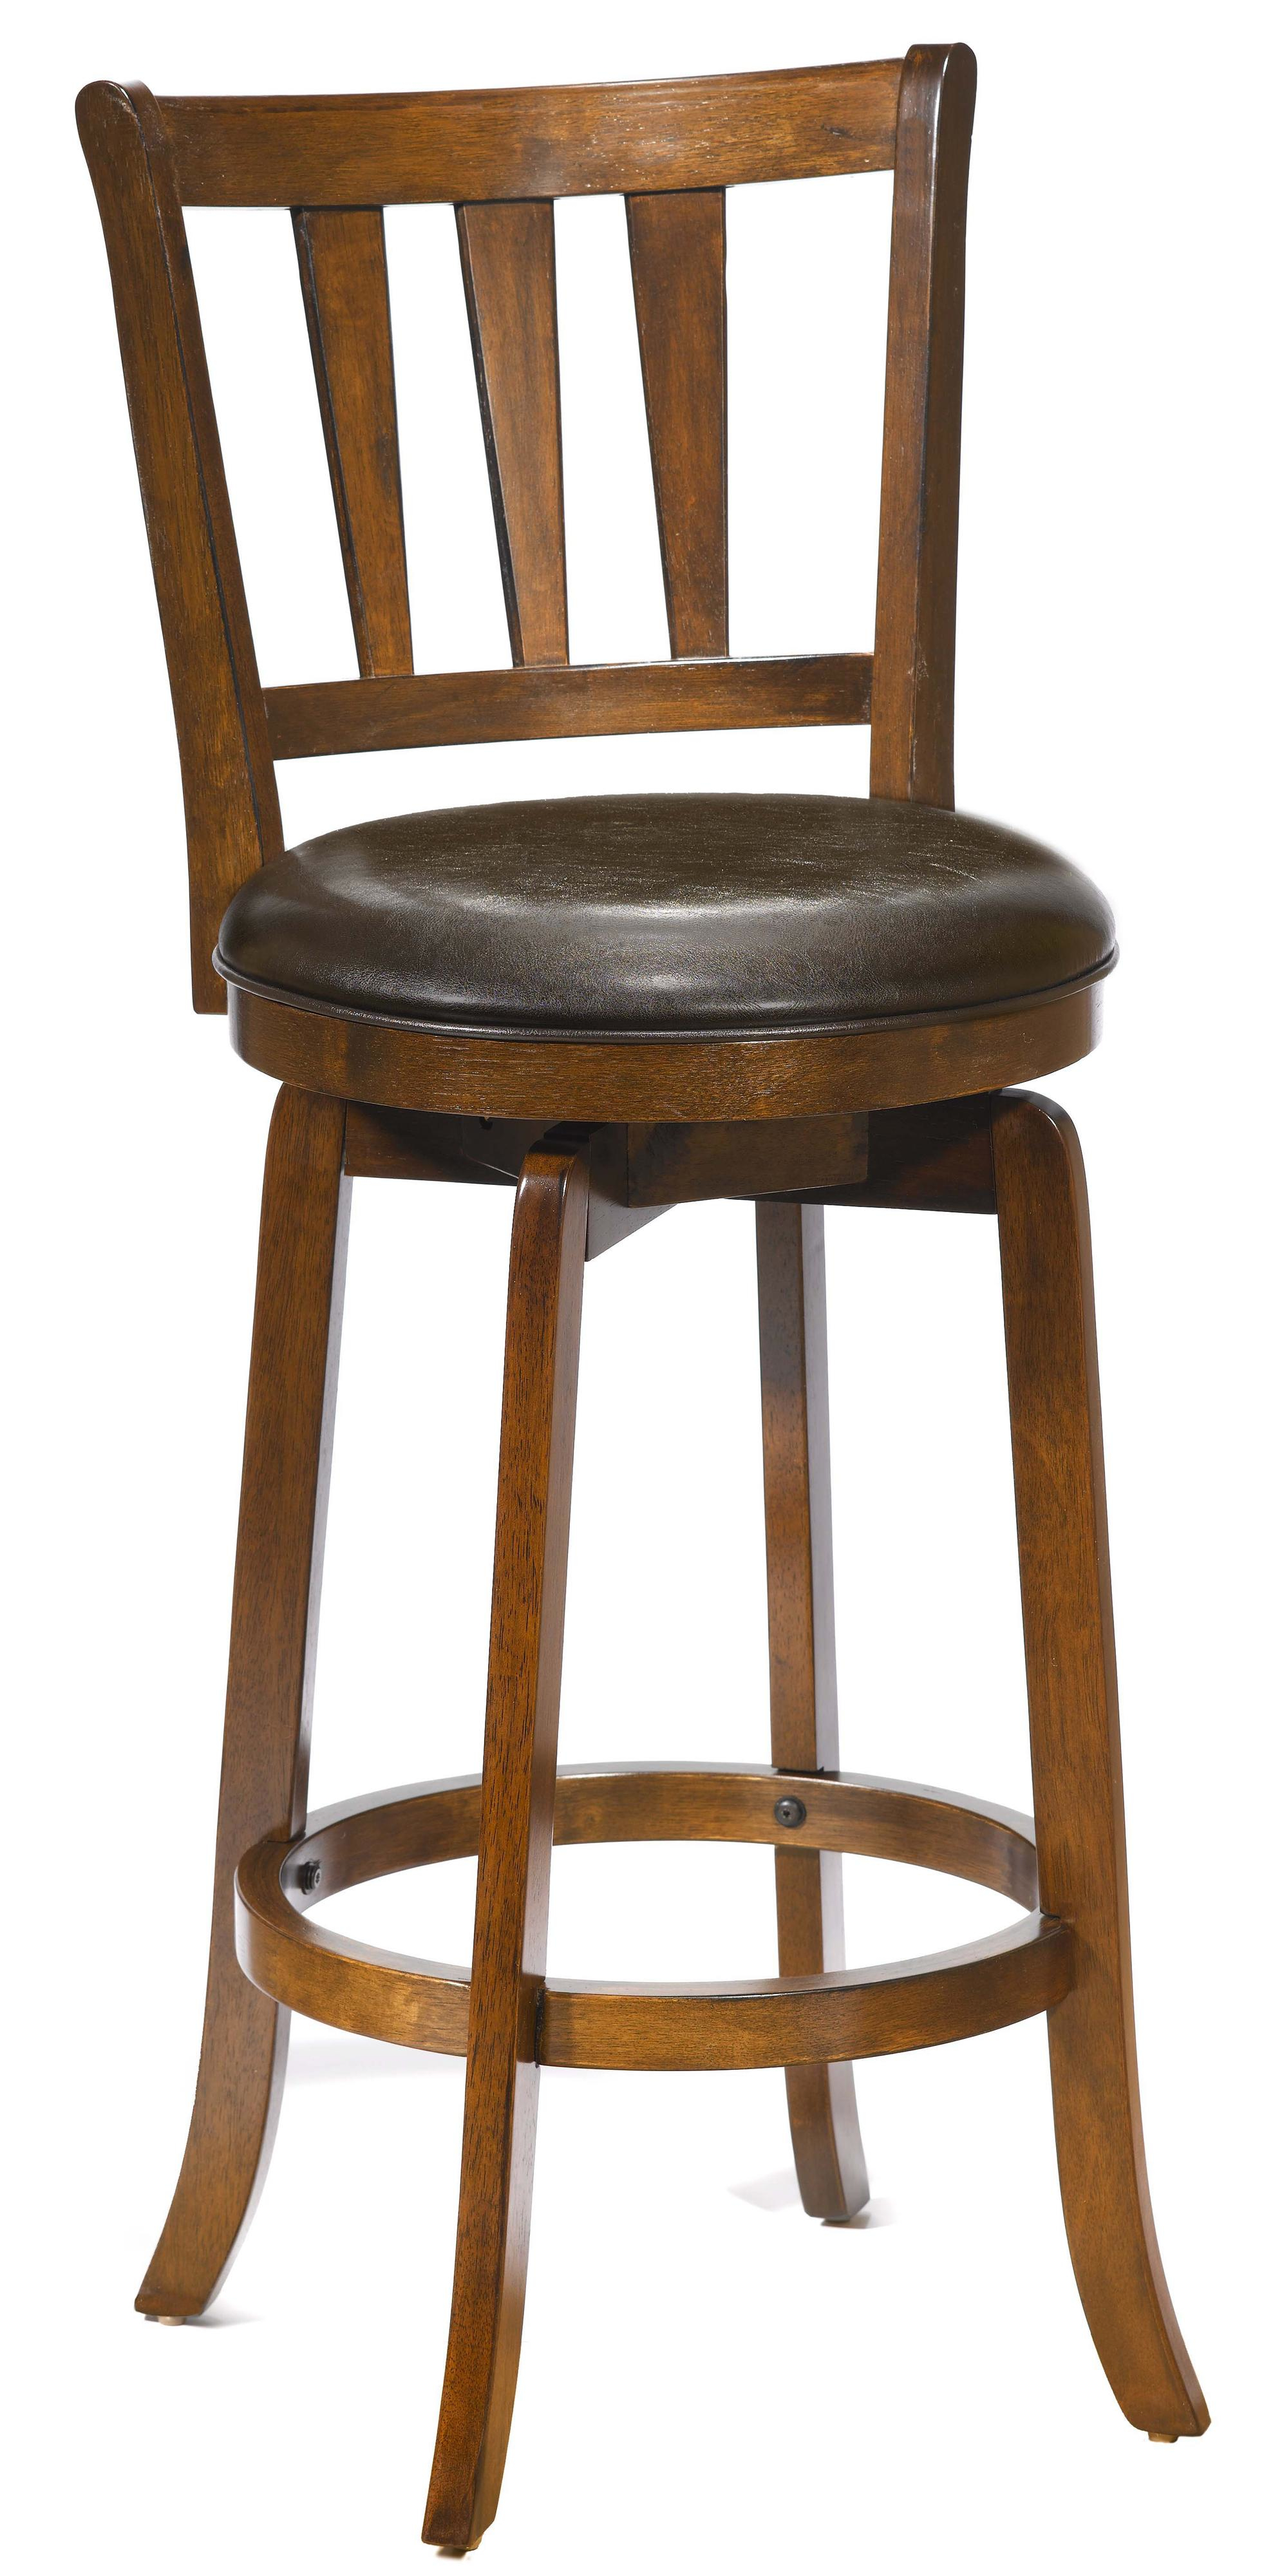 Comfortable Bar Stools with Backs | Seagrass Bar Stools | Pier One Counter Stools